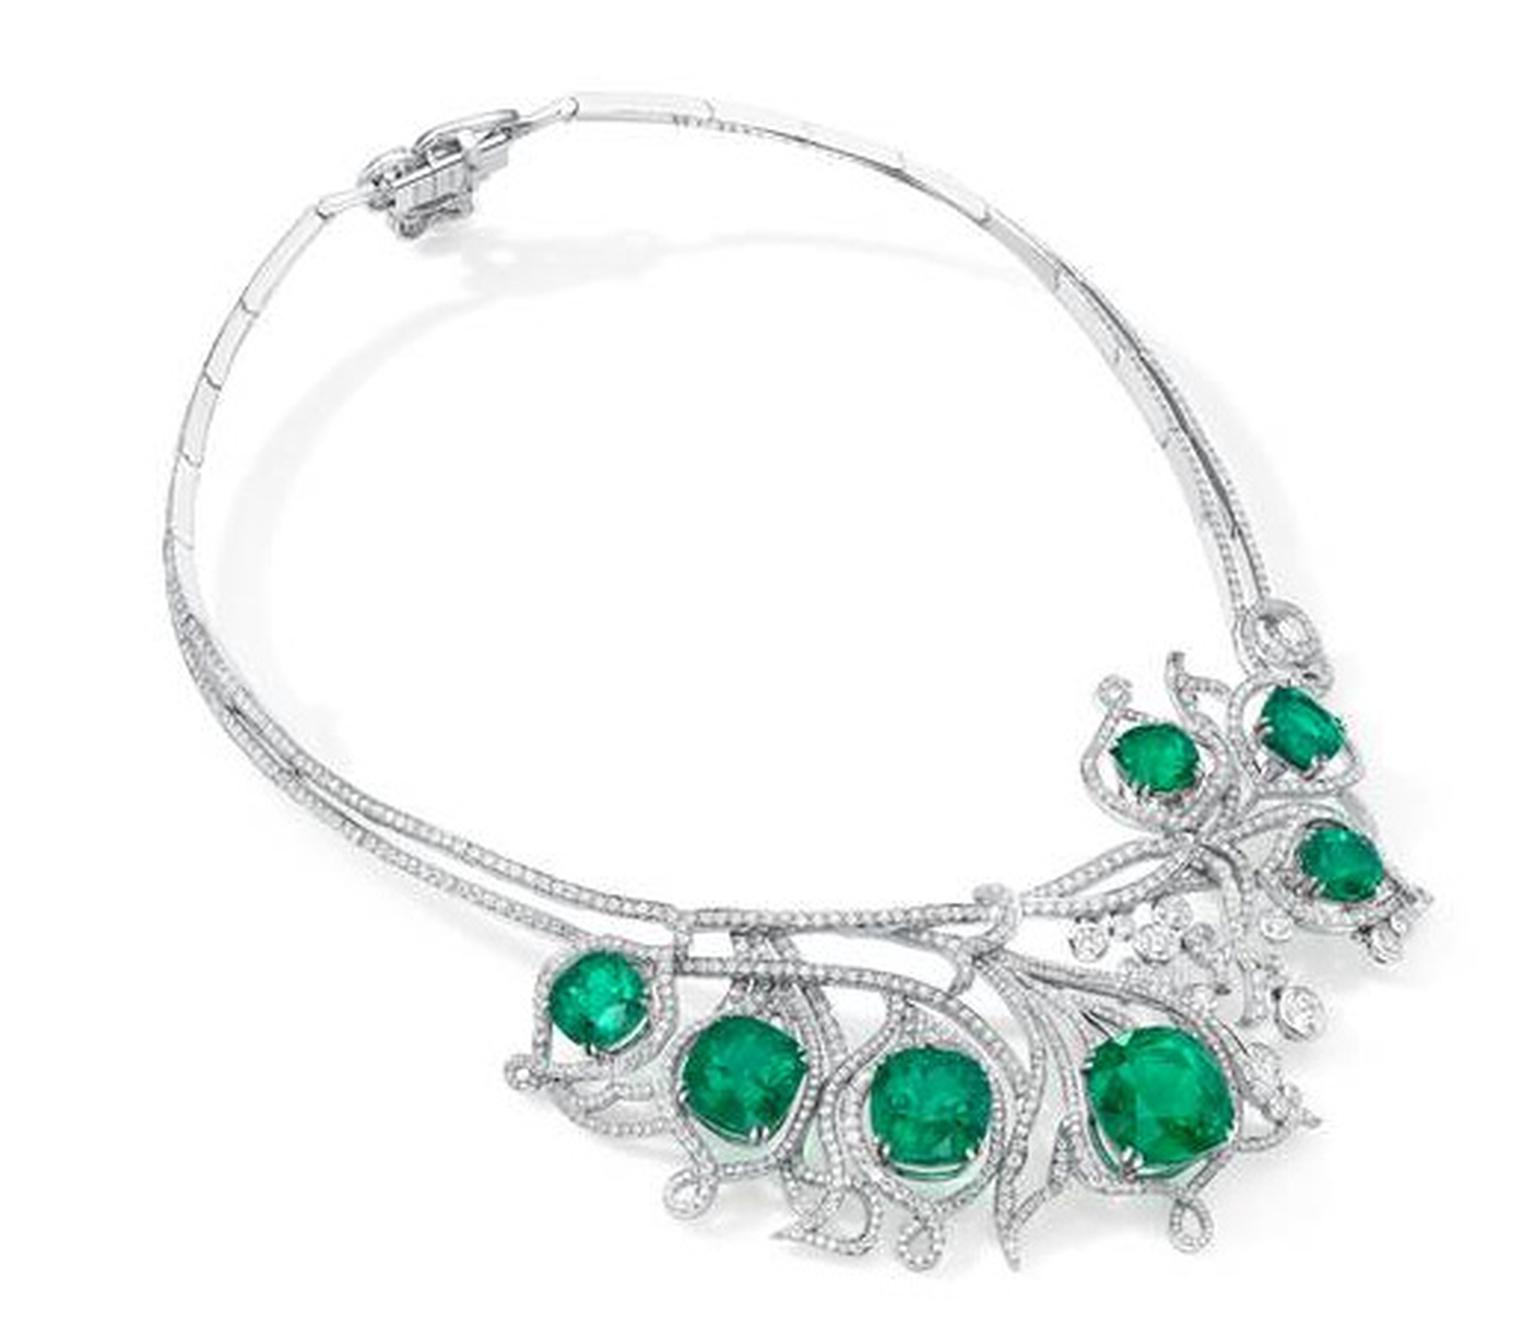 Boodles Greenfire collection necklace set with rare Colombian emeralds.